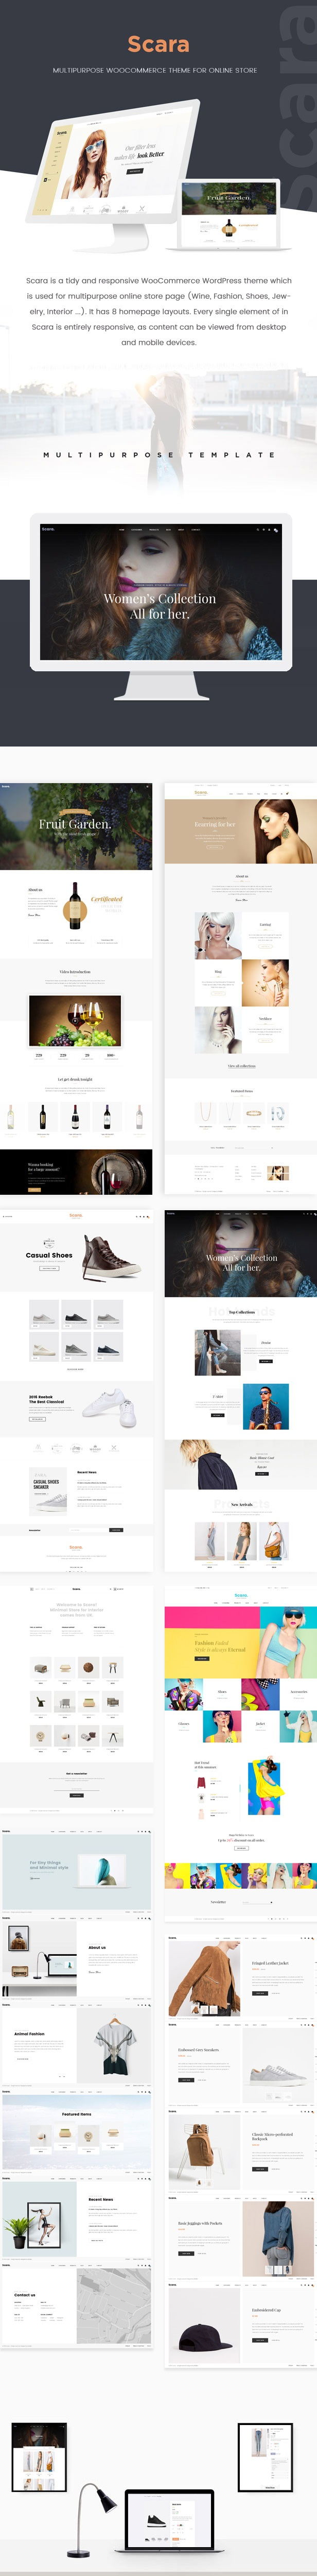 SCARA - Multipurpose WooCommerce Theme for Online Store